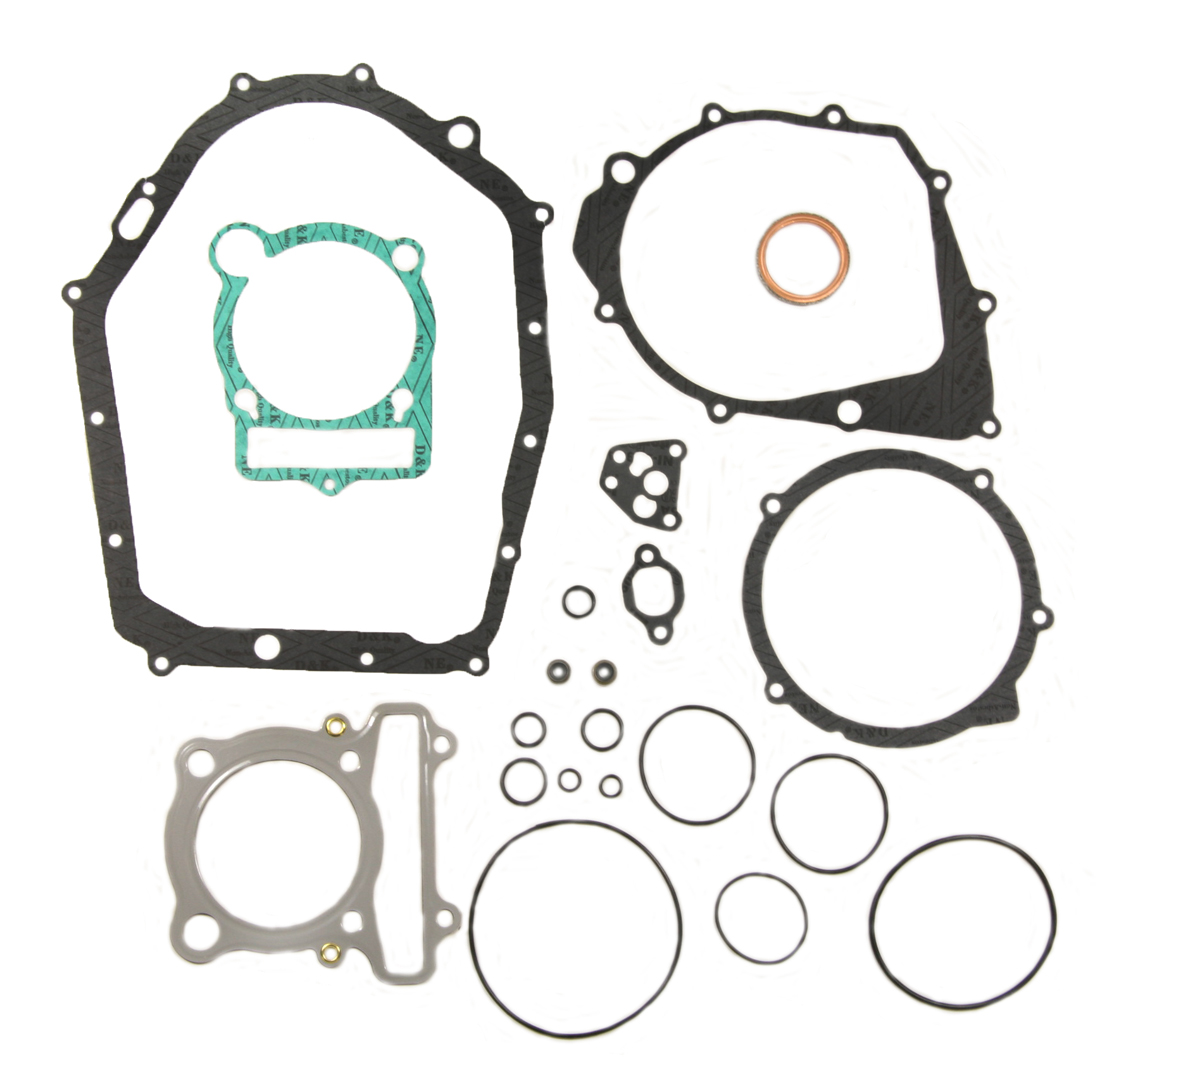 Namura Full Gasket Kit Yamaha 350 Warrior, Raptor, Moto-4